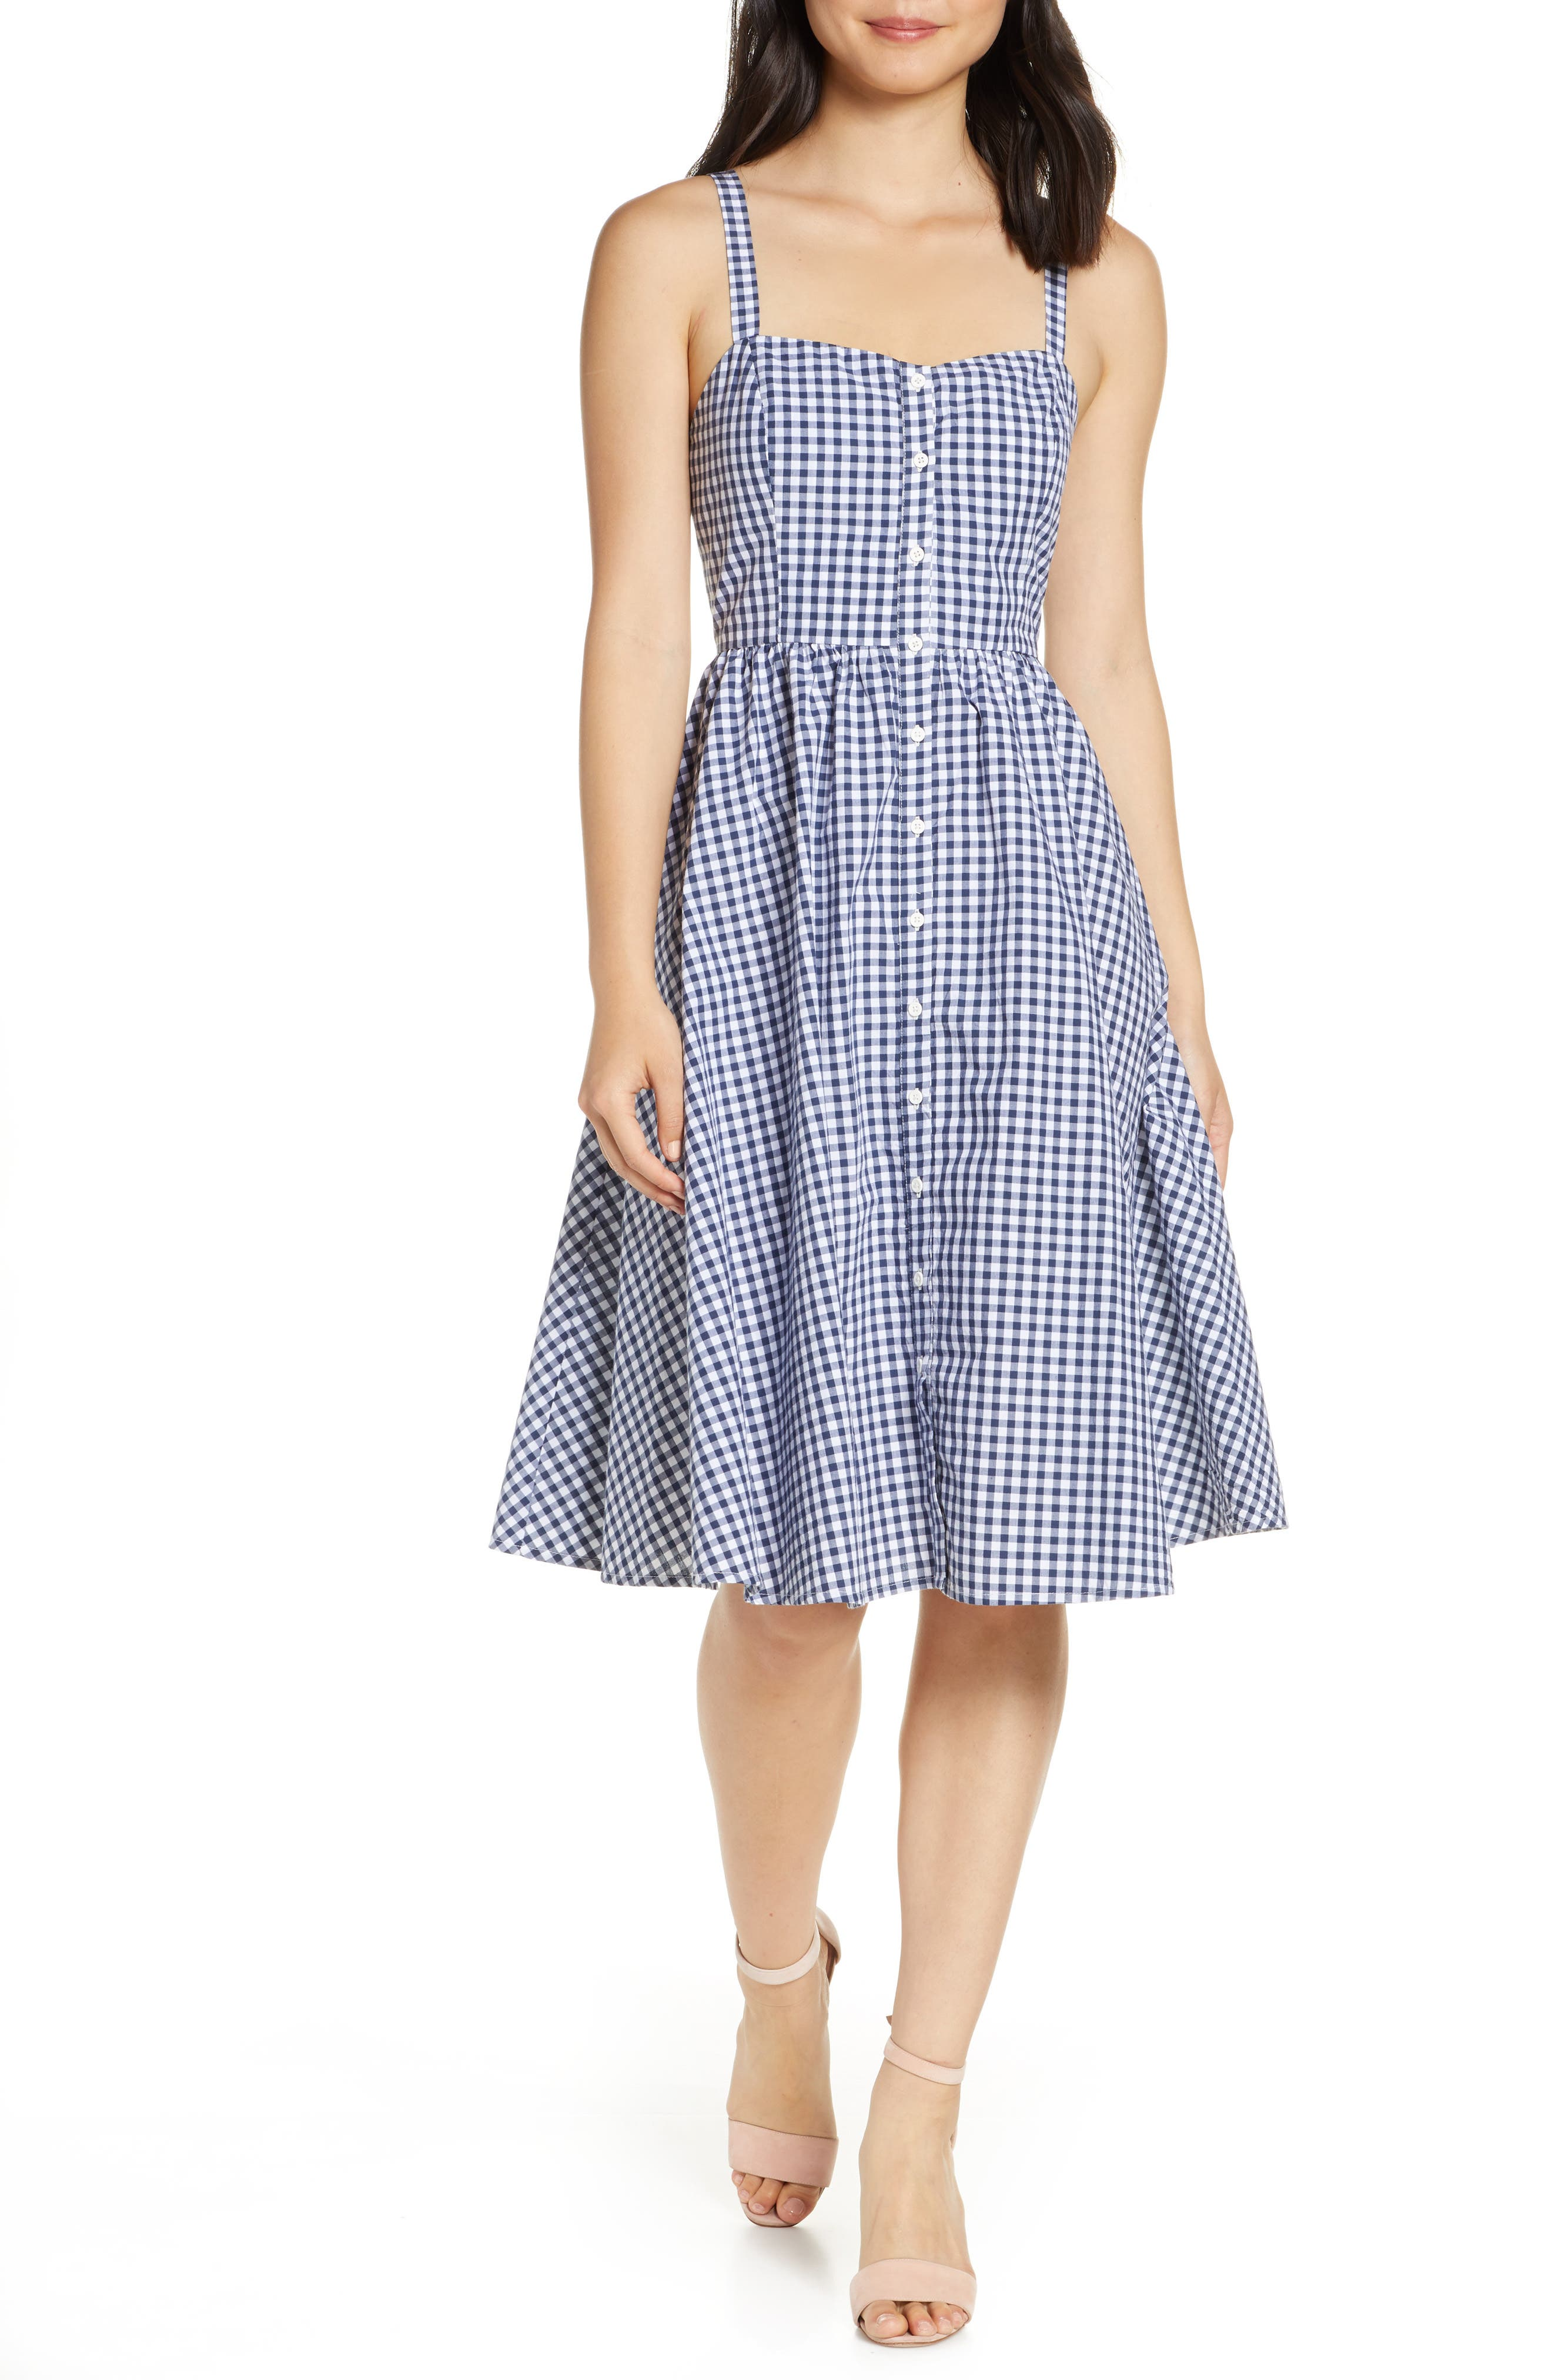 French Connection Gingham Fit & Flare Sundress, Blue